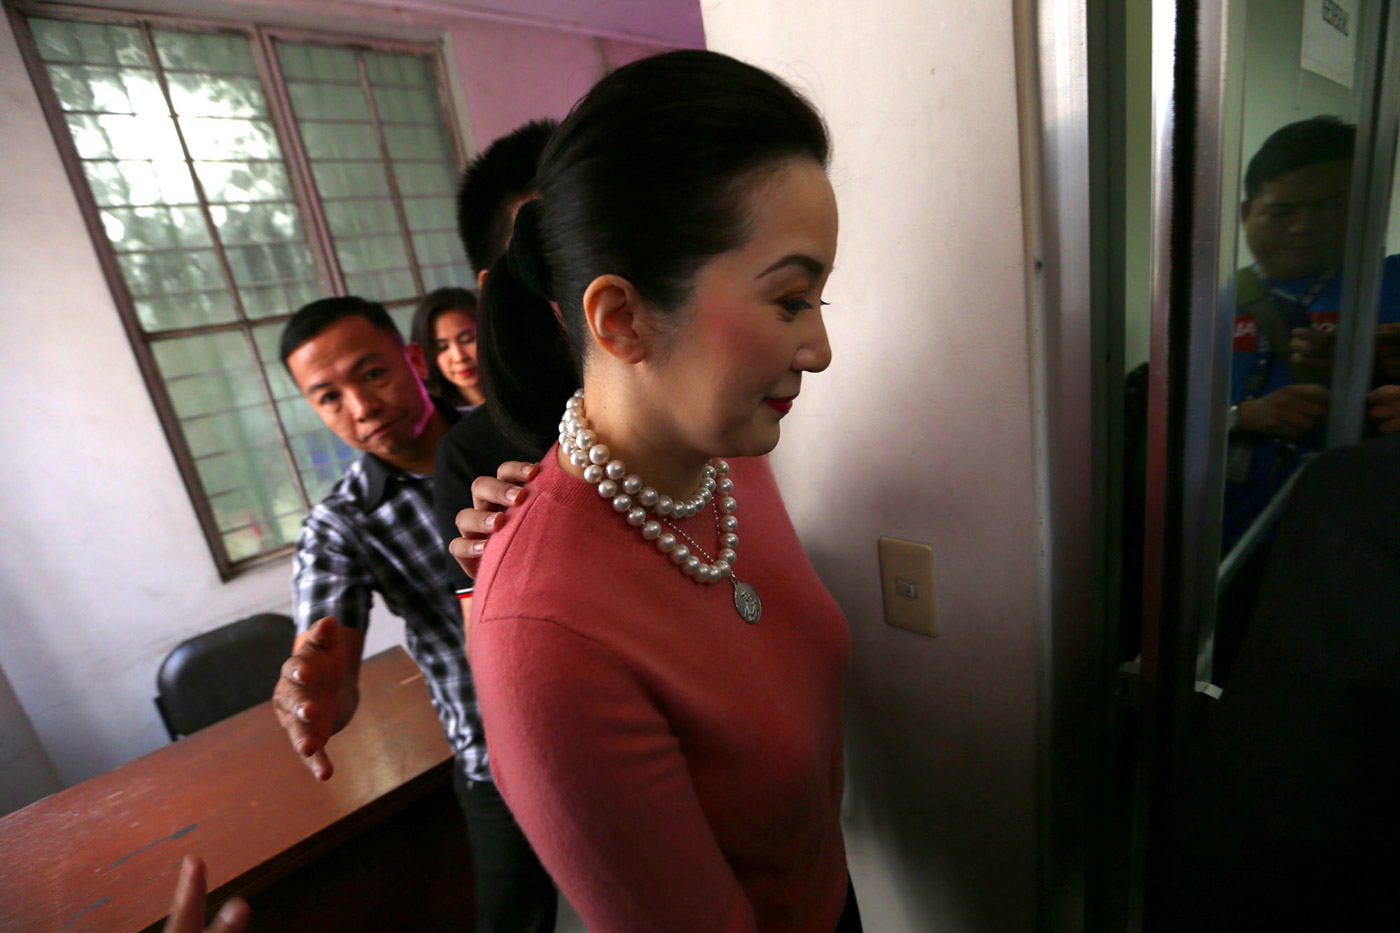 ANOTHER ONLINE BATTLE? Kris Aquino this time denies allegations made by Gretchen Barretto. In this file photo, Kris files a cyber libel case against Jesus Falcis on November 22, 2018. Photo by Inoue Jaena/Rappler